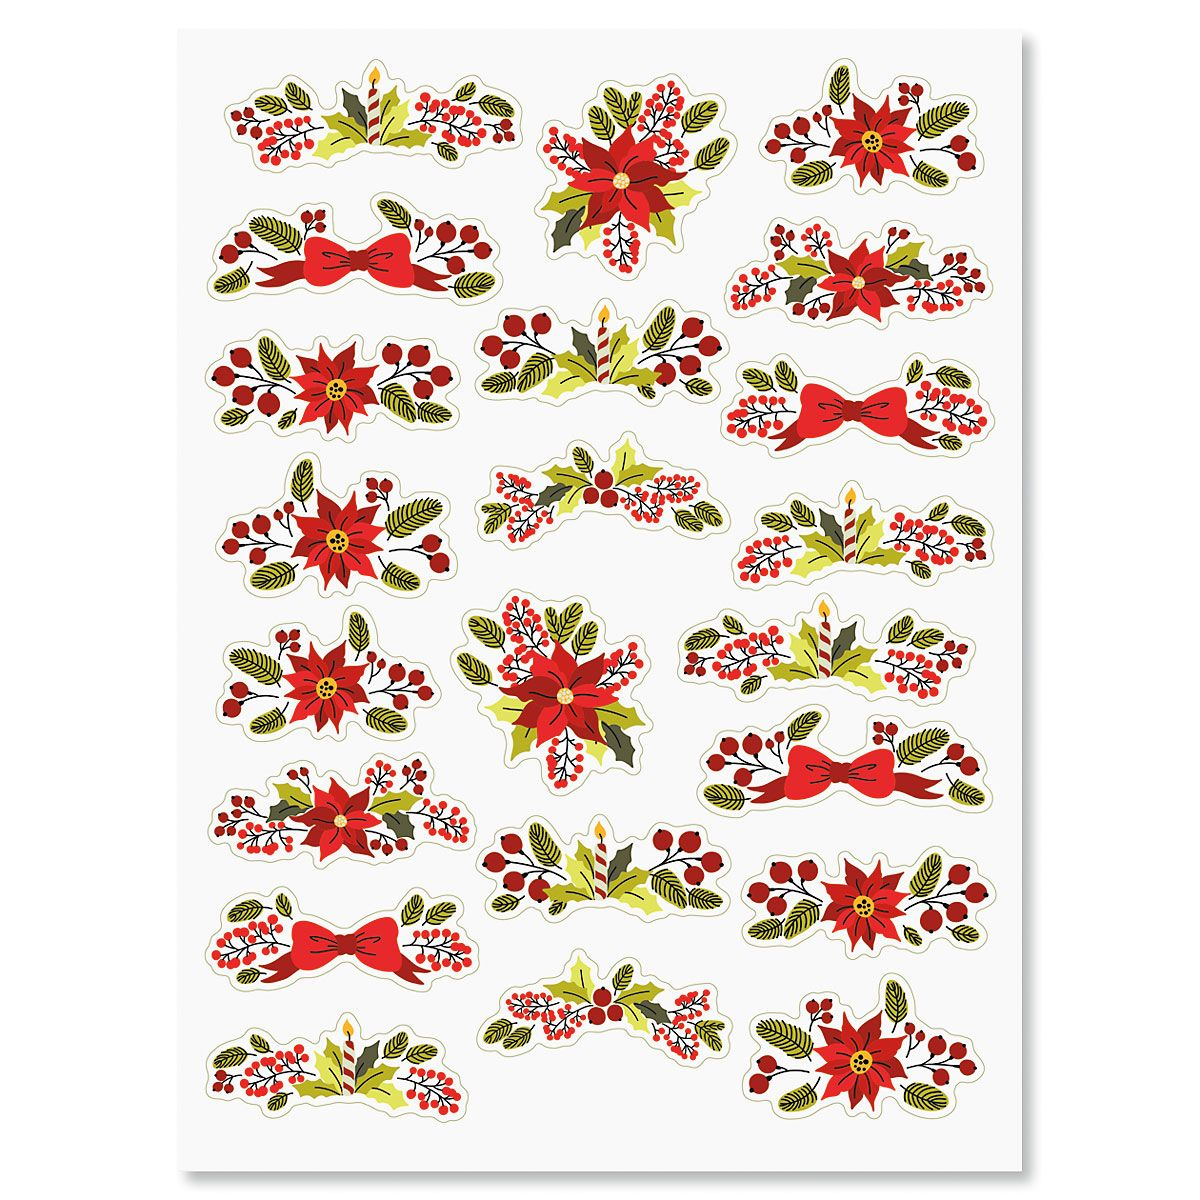 Vintage Christmas Floral Stickers